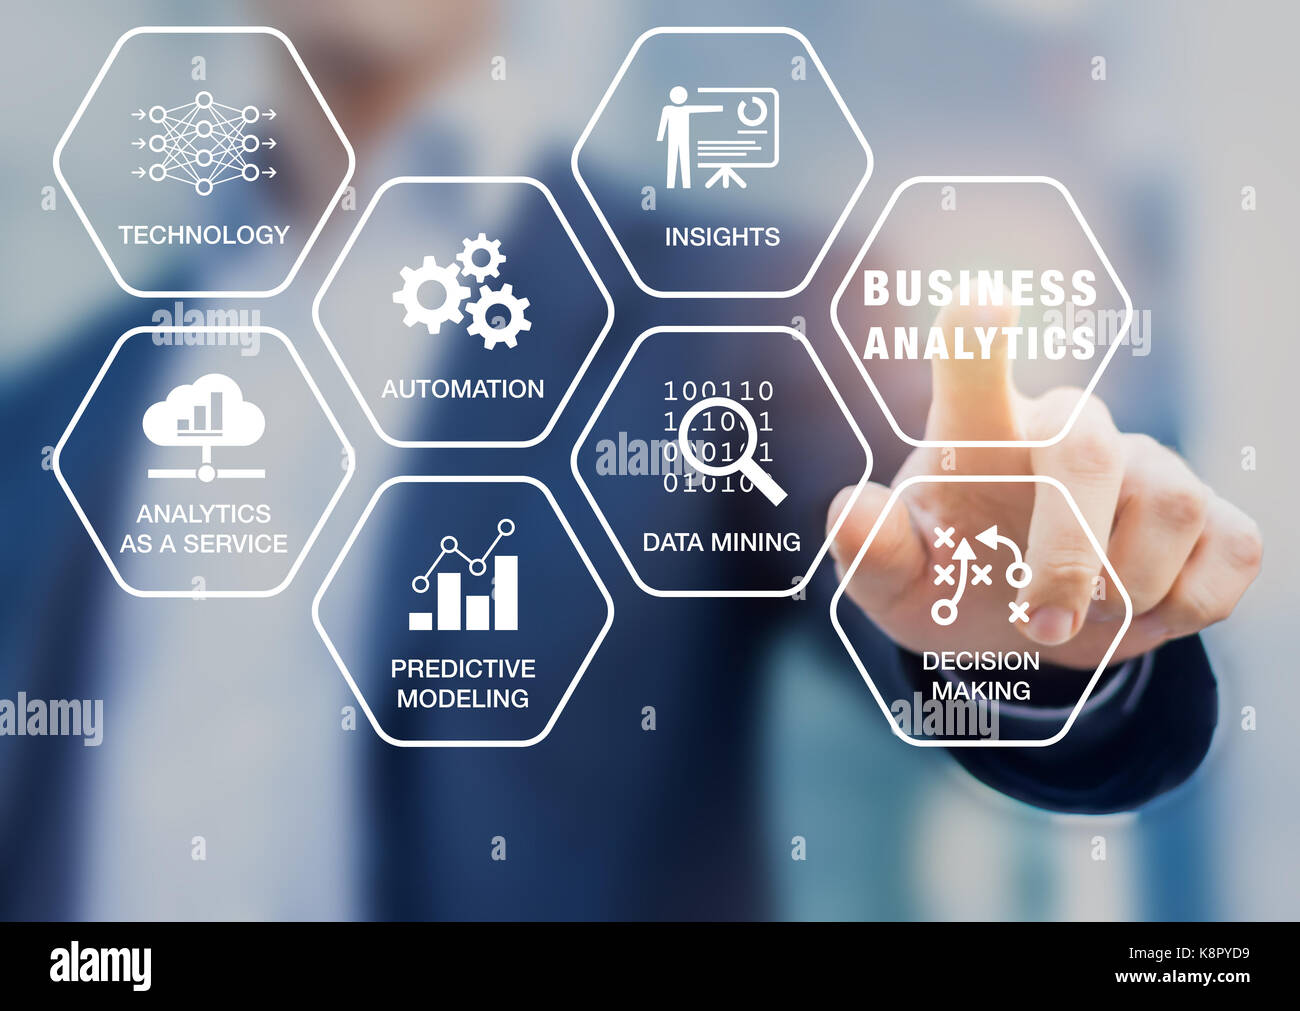 Automation Technology: Business Process Modeling Stock Photos & Business Process